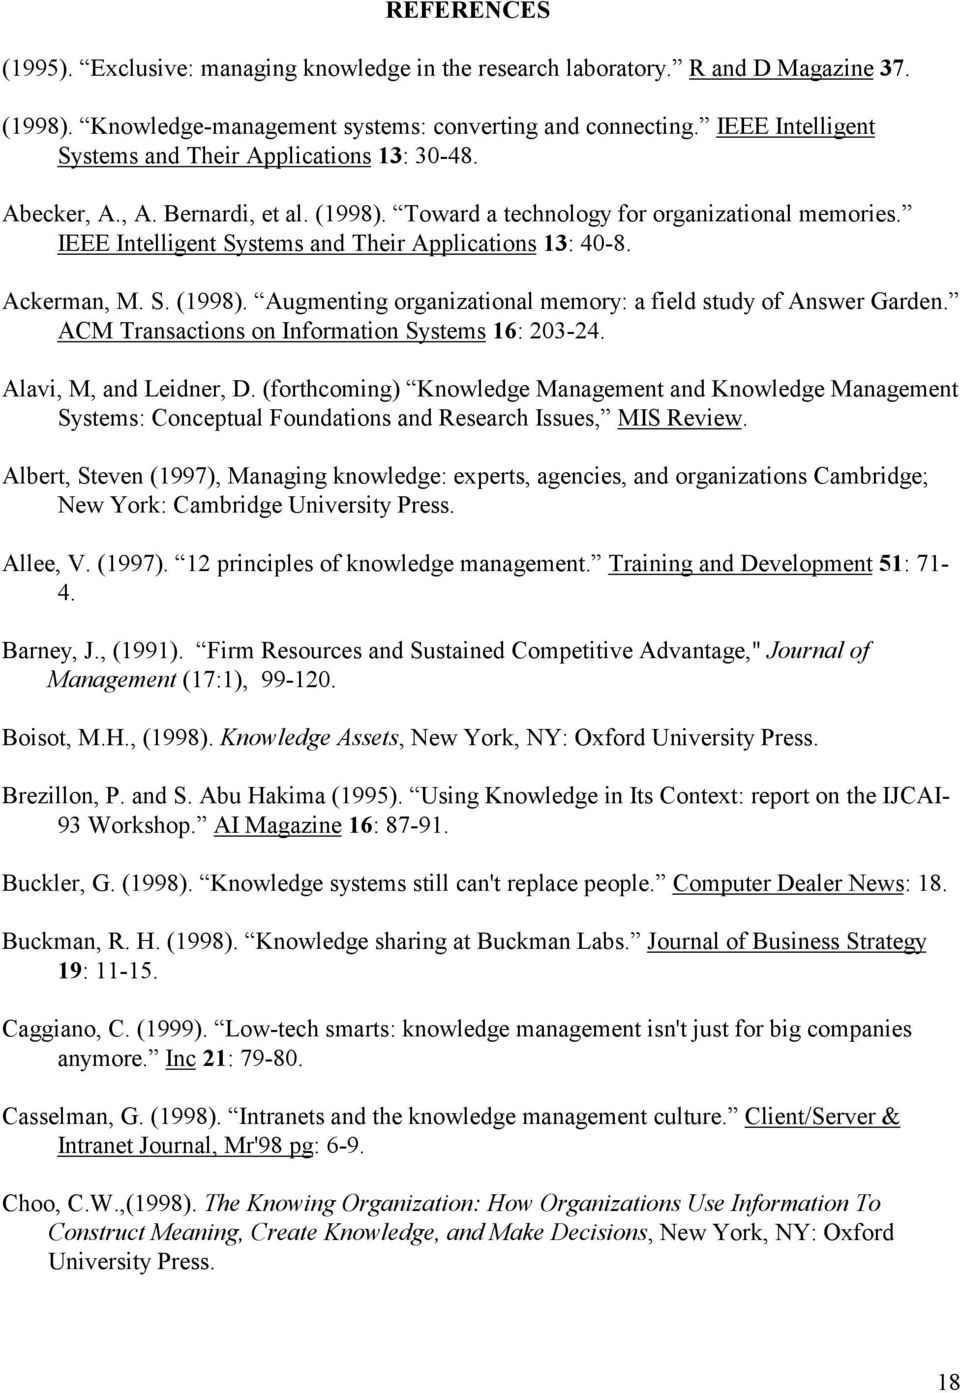 IEEE Intelligent Systems and Their Applications 13: 40-8. Ackerman, M. S. (1998). Augmenting organizational memory: a field study of Answer Garden. ACM Transactions on Information Systems 16: 203-24.